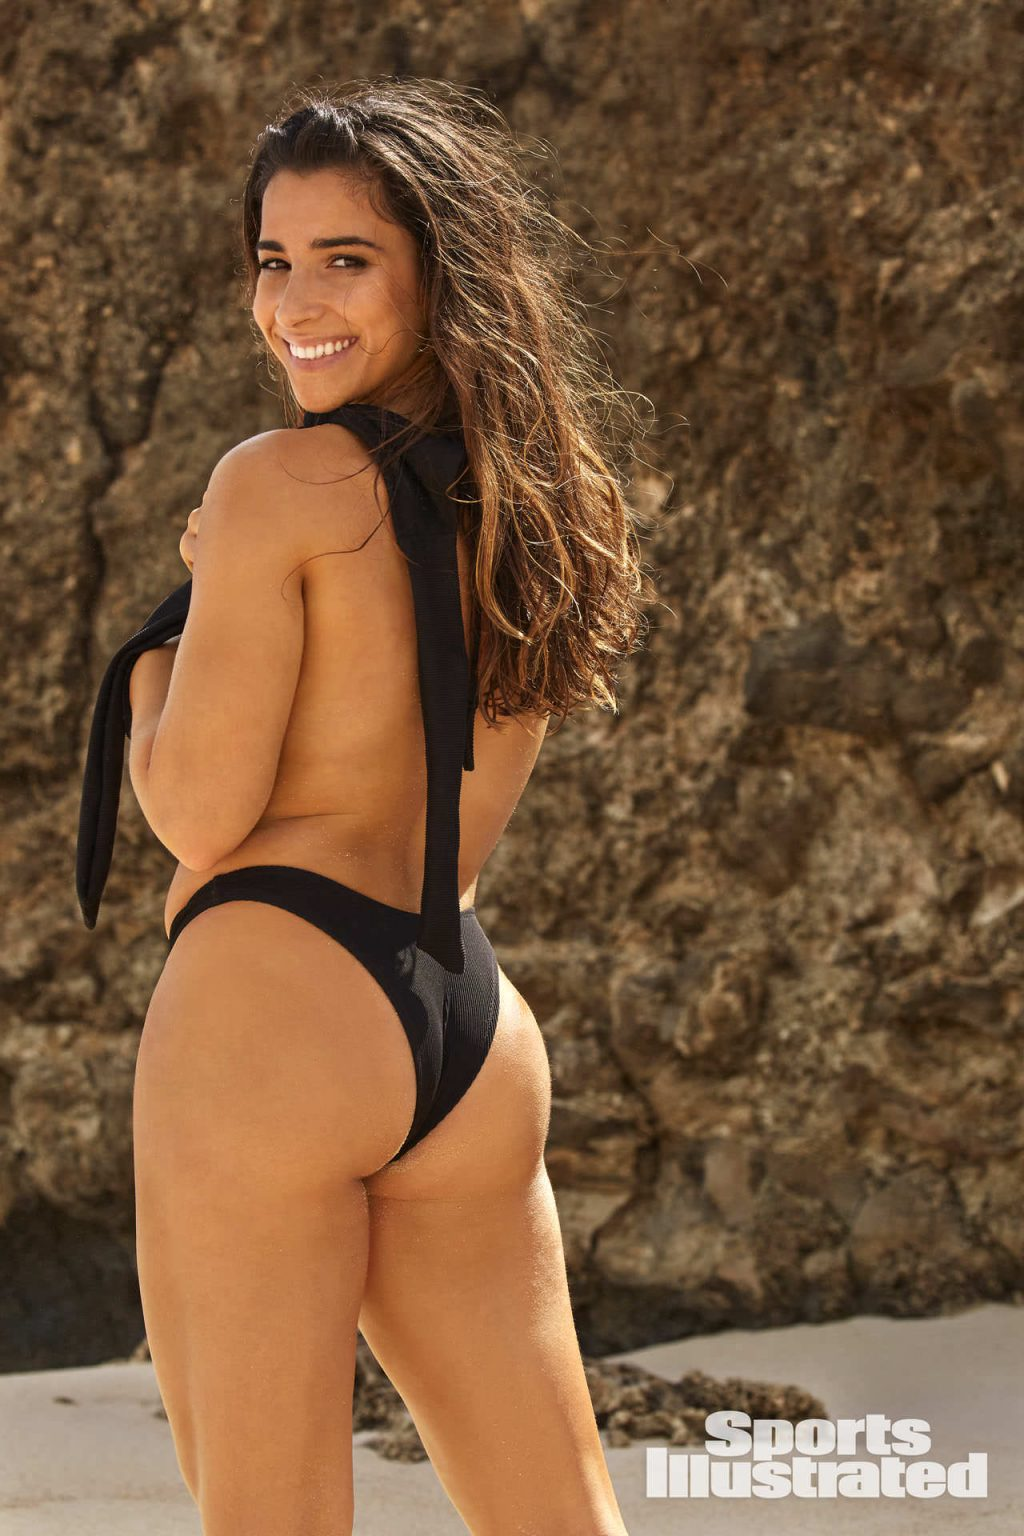 Aly Raisman's Butt for Sports Illustrated (1 Photo)